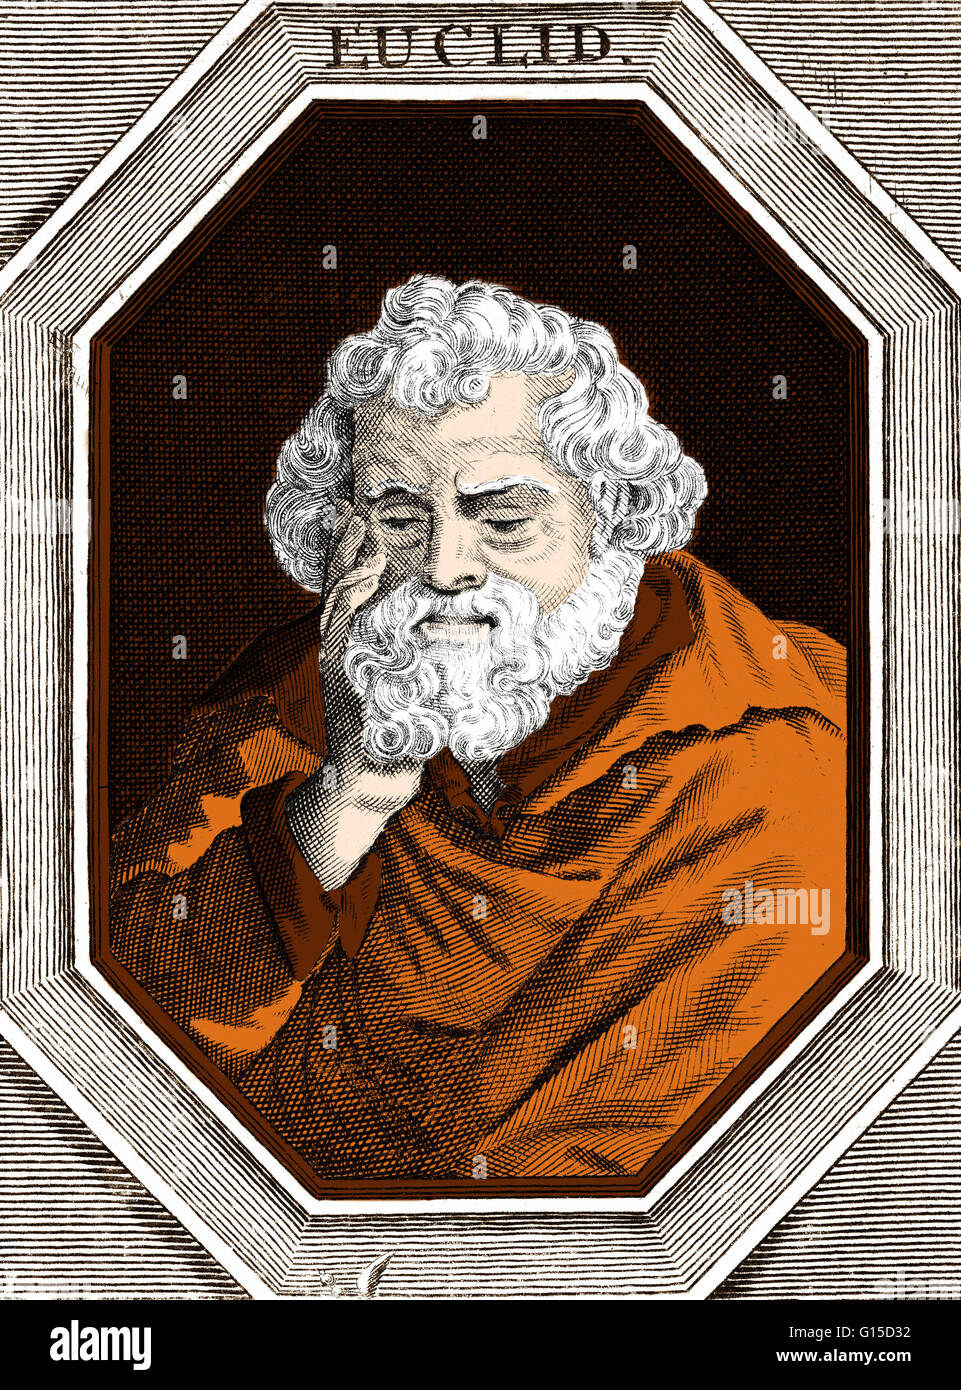 Ancient greek mathematician stock photos ancient greek euclid meaning good glory 300 bc was a greek mathematician often biocorpaavc